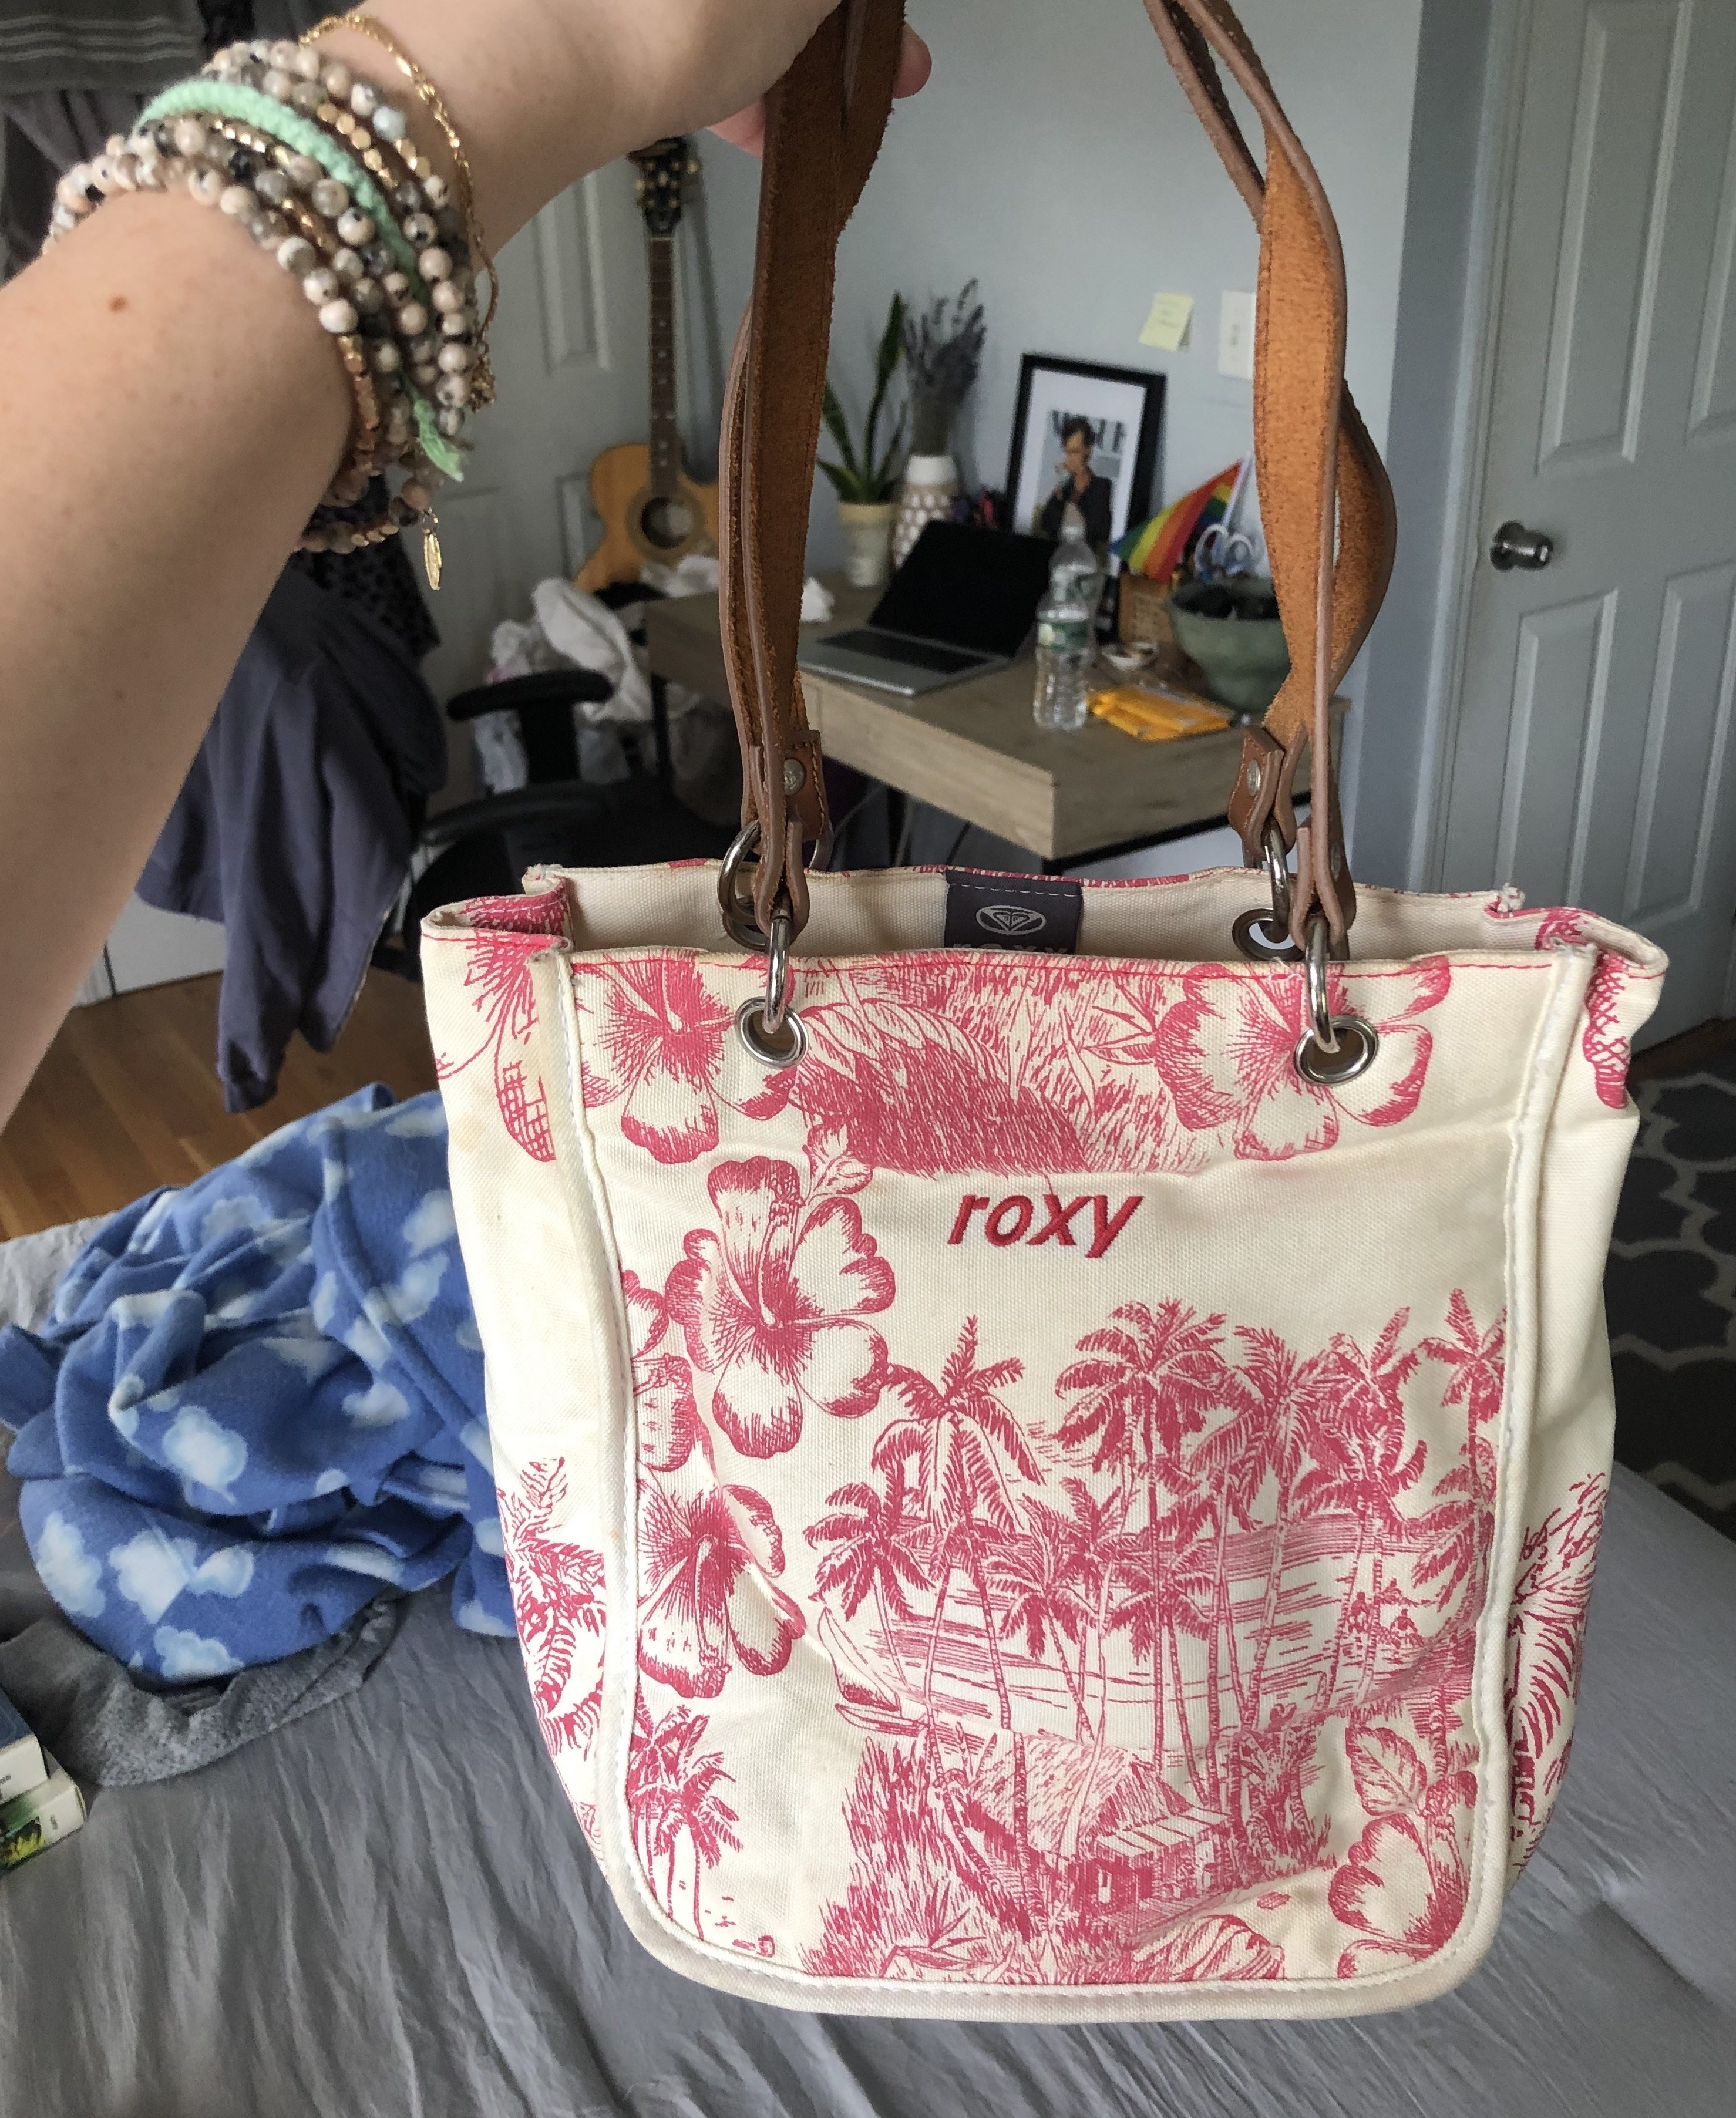 Me holding up the Roxy purse in my childhood bedroom